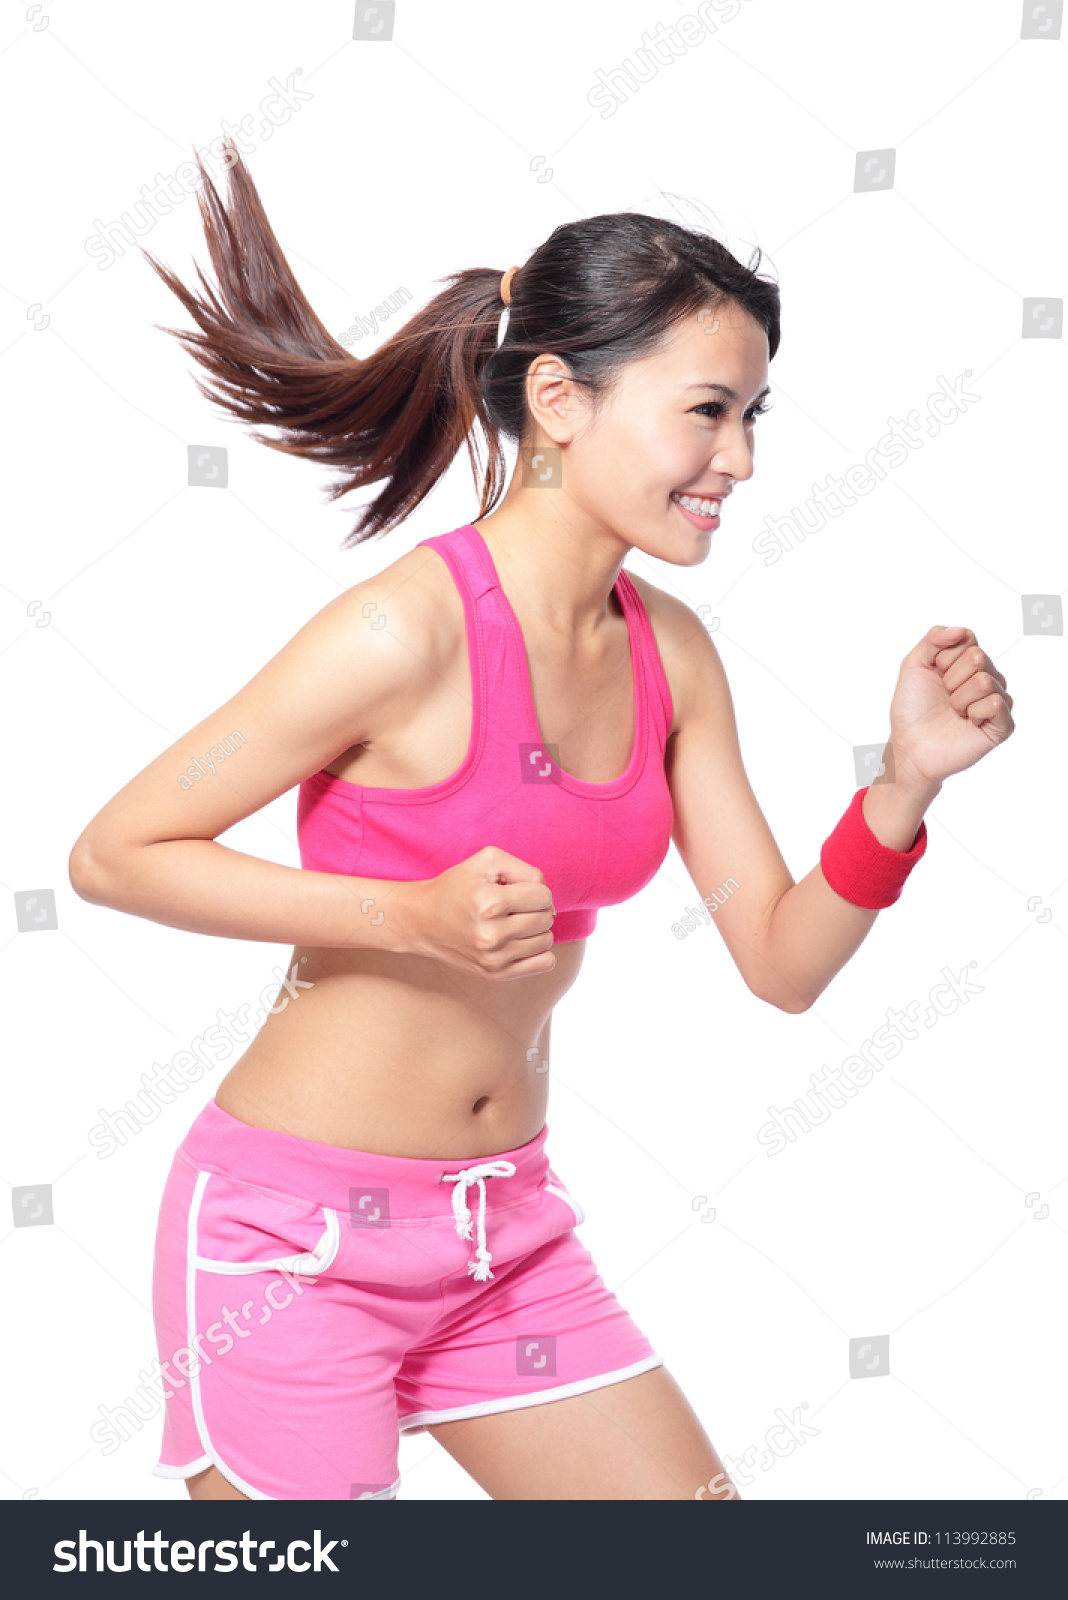 8cef64d1bb3b Runner woman in profile. Running fit fitness sport model jogging smiling  happy isolated on white background. model is a asian girl - Image